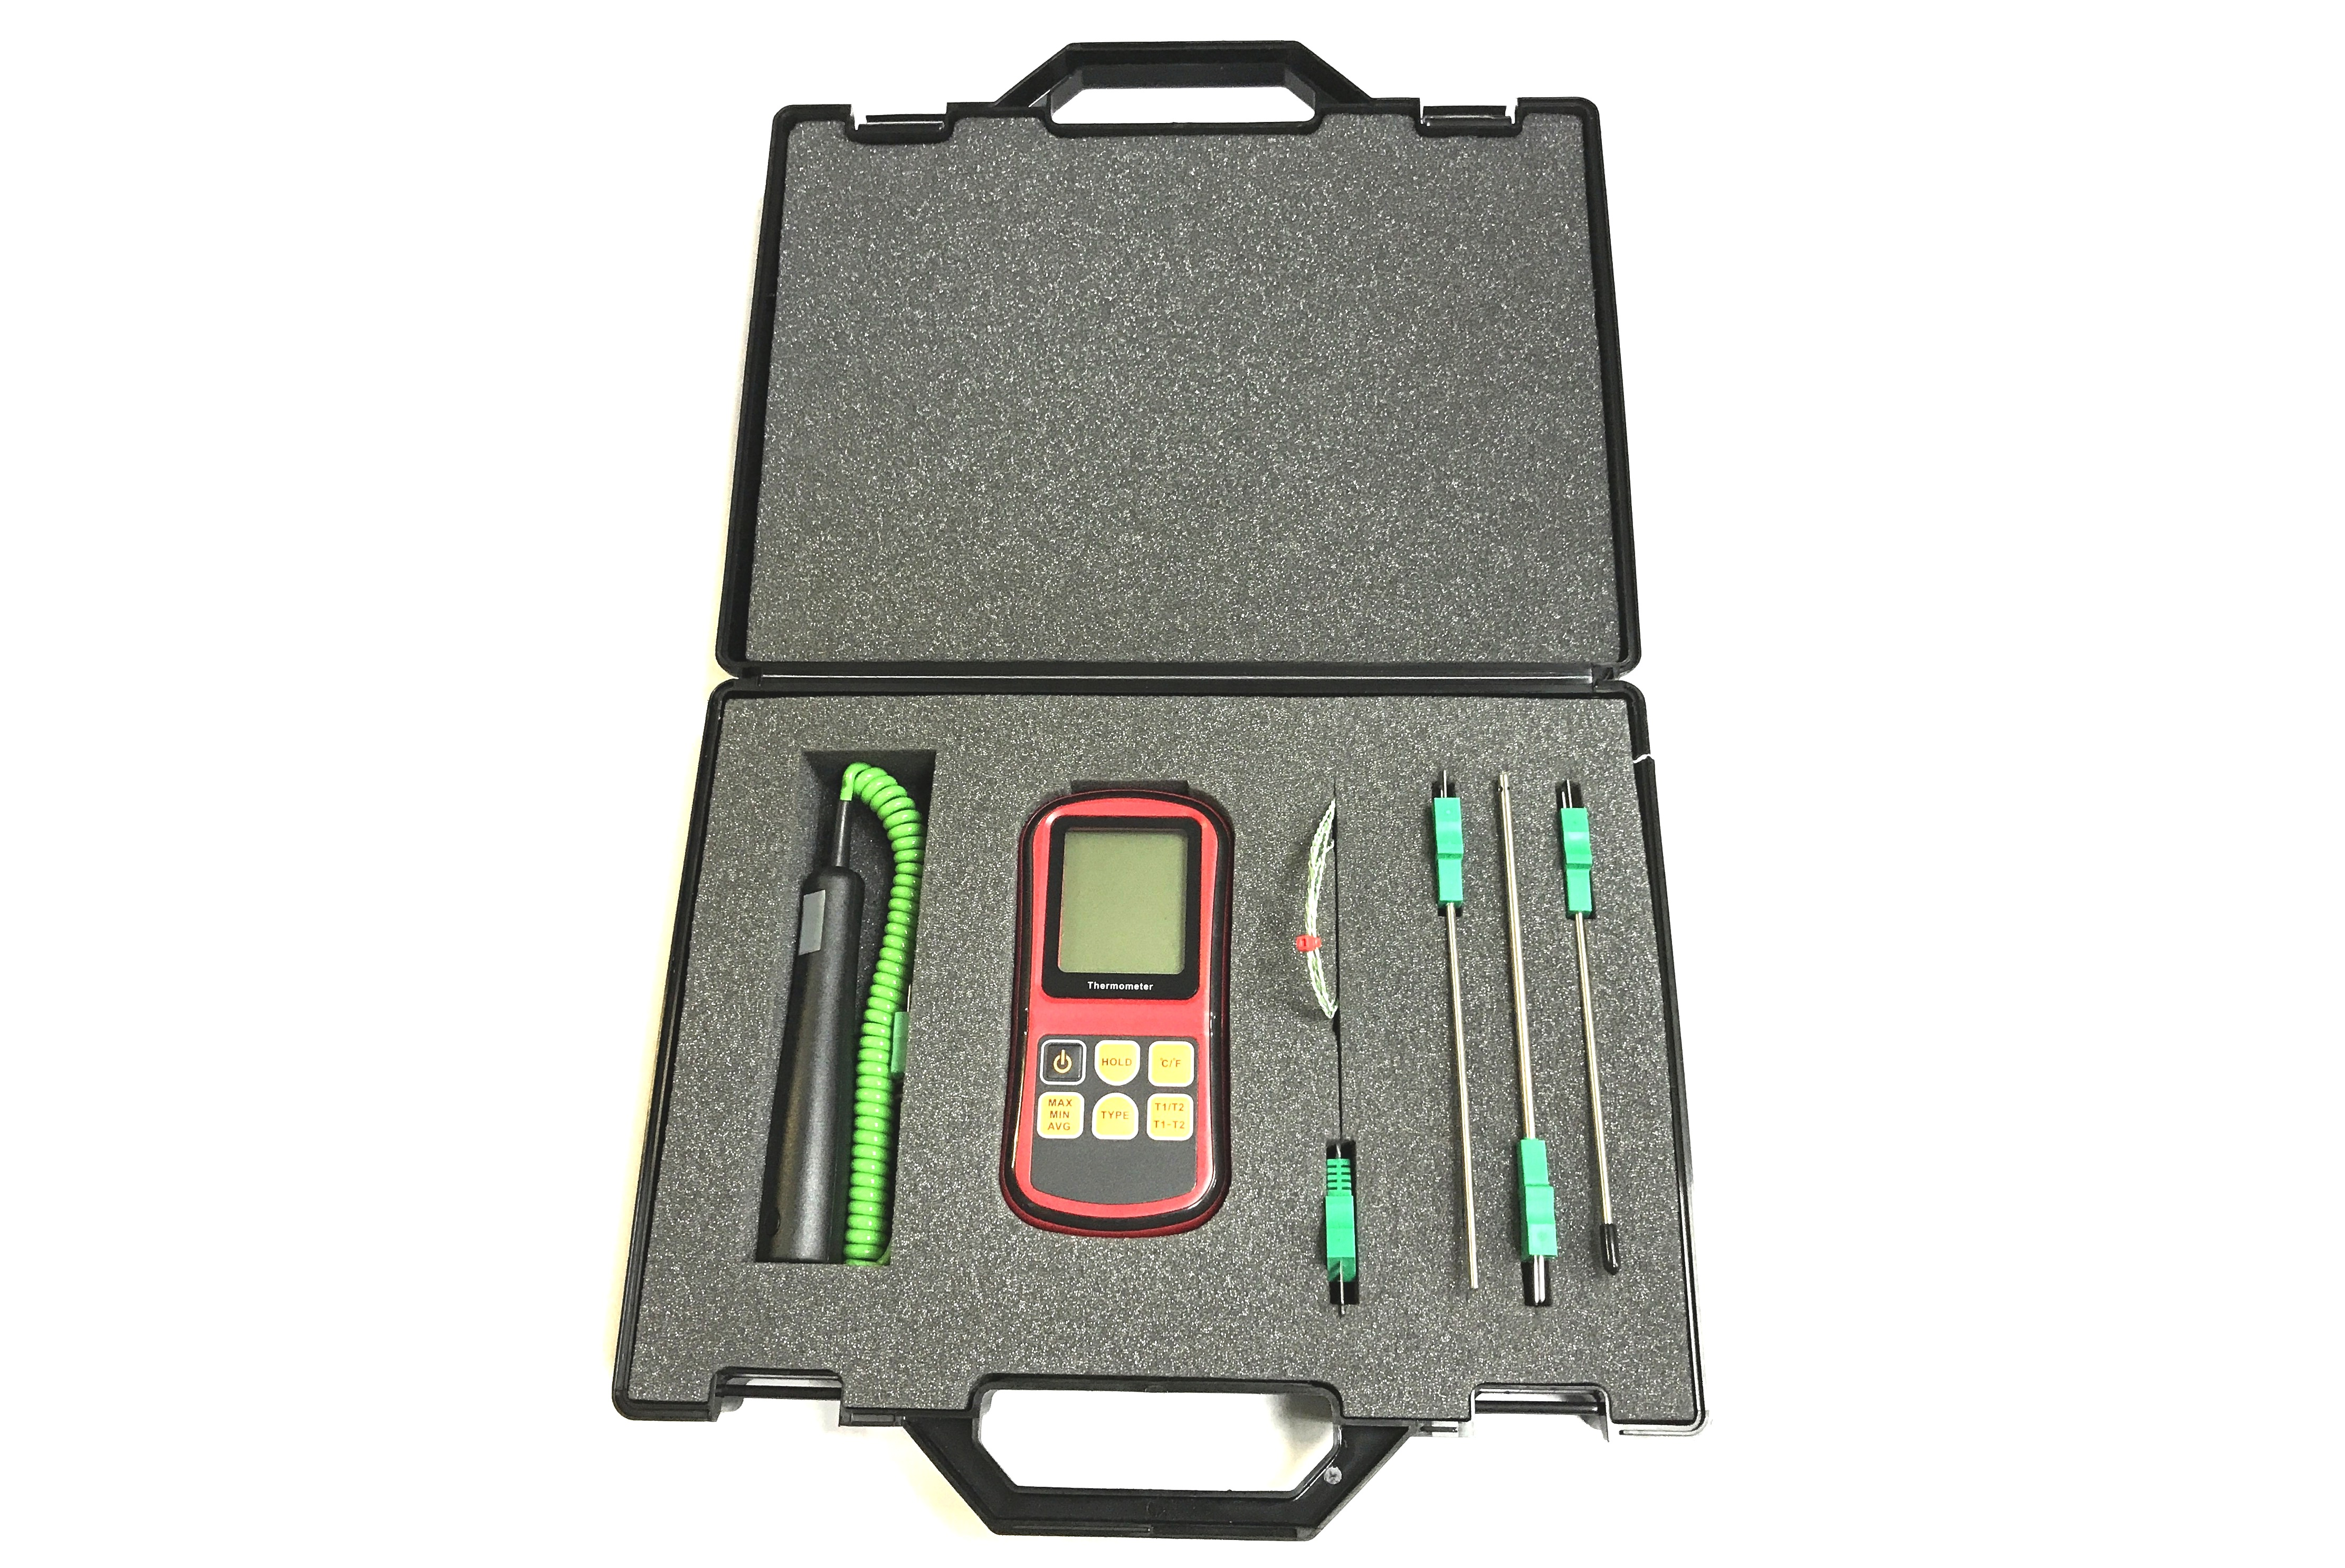 Thermocouple Kits with Meter & Probes